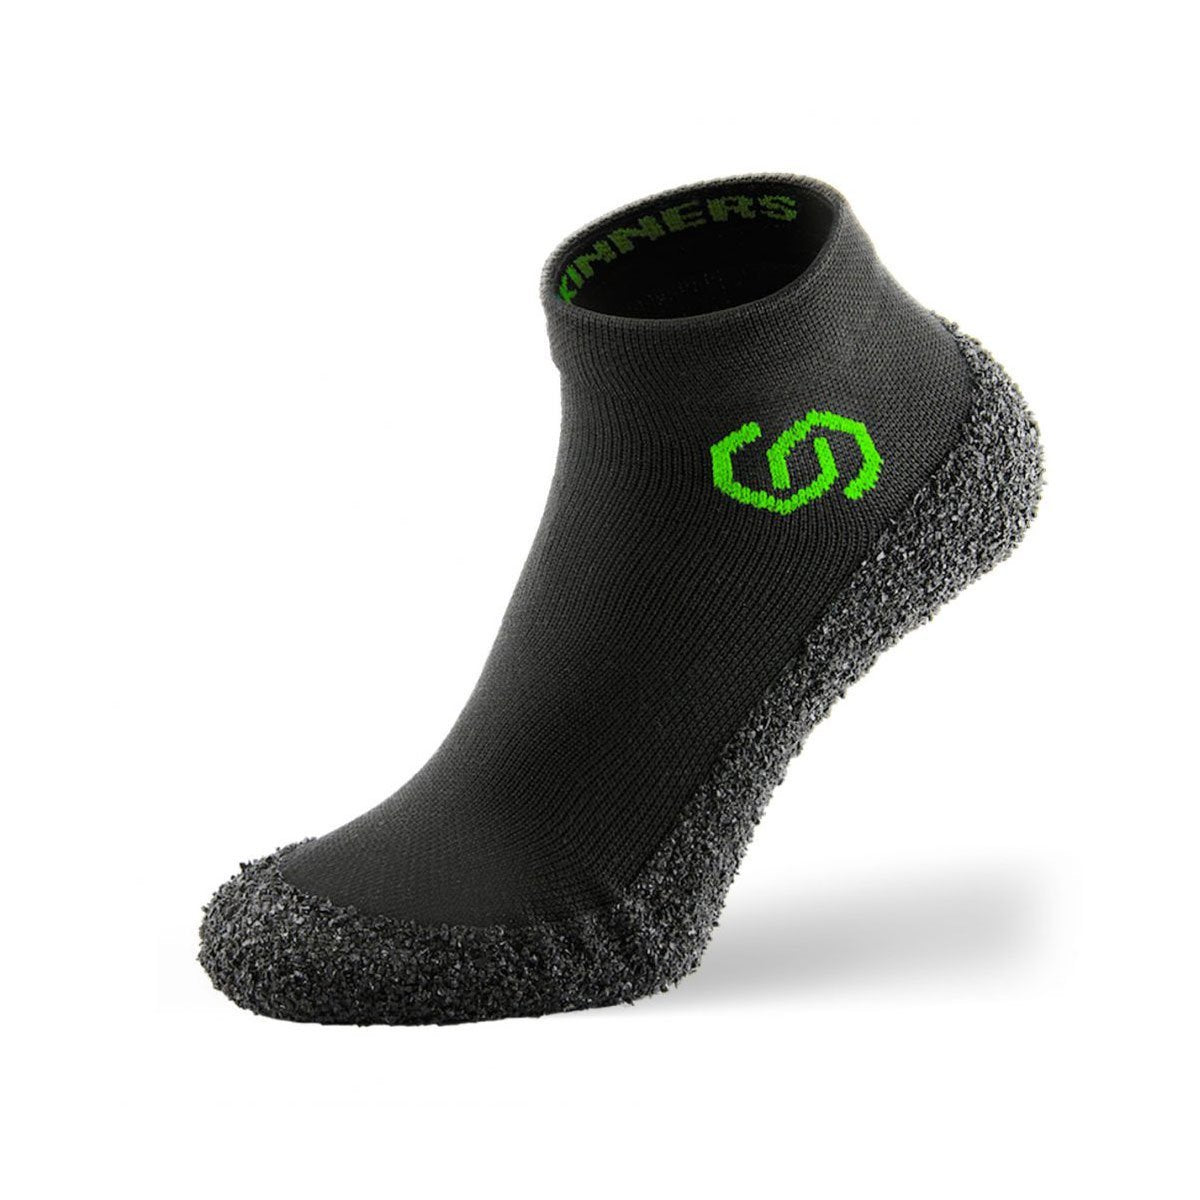 Skinners | Green | Sock Shoes | Barefoot Socks, Slippers | Running Socks